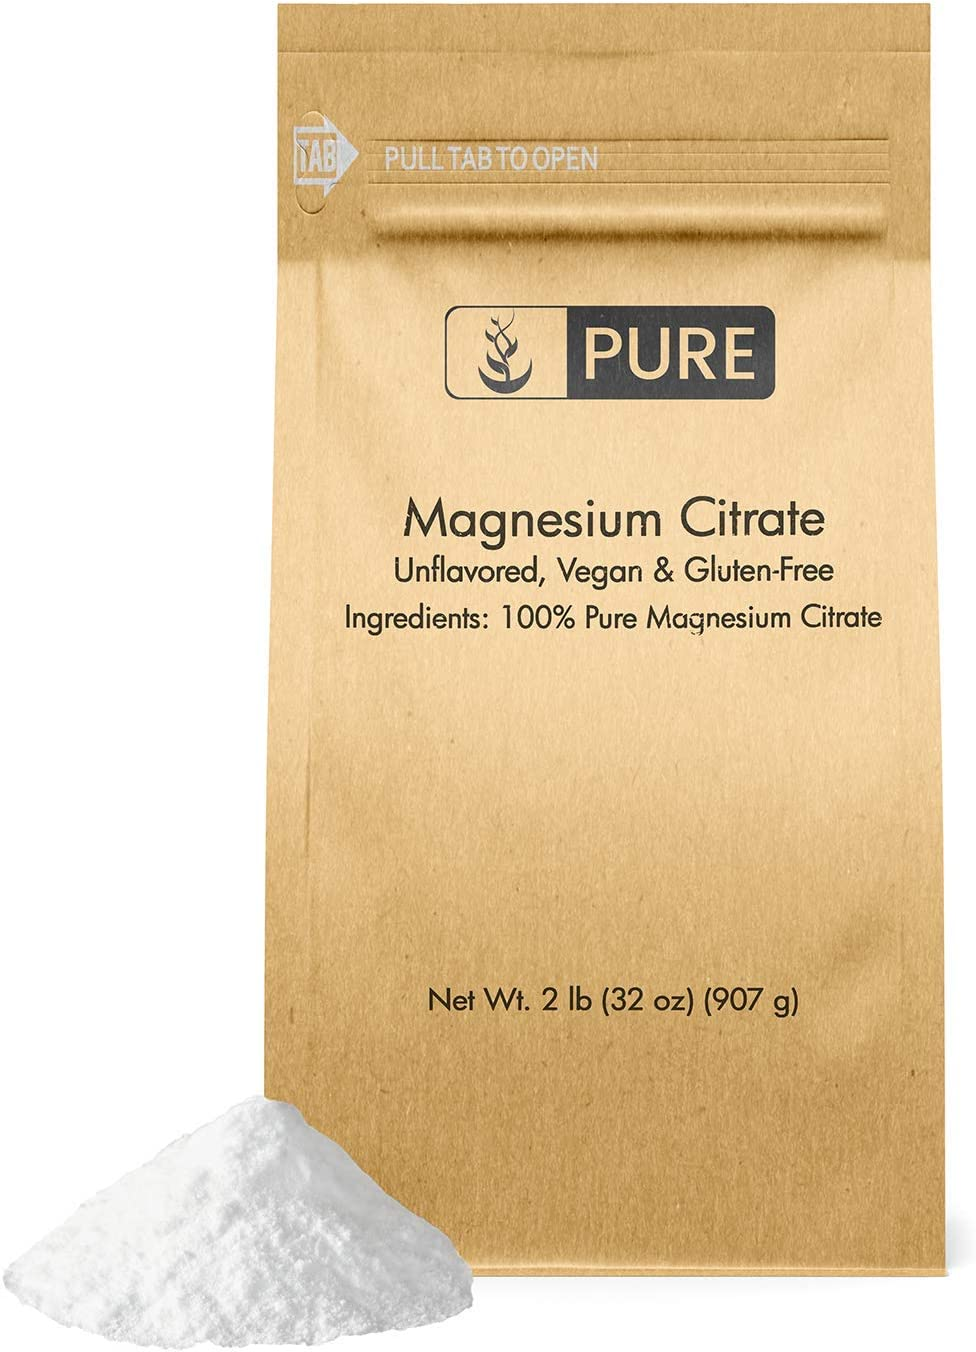 100% Pure Magnesium Citrate Powder, 2 lb, 3225mg Serving, No Filler or Additives, Gluten-Free, Made in The USA, Bioavailable, Unflavored, Vegan, Eco-Friendly Packaging